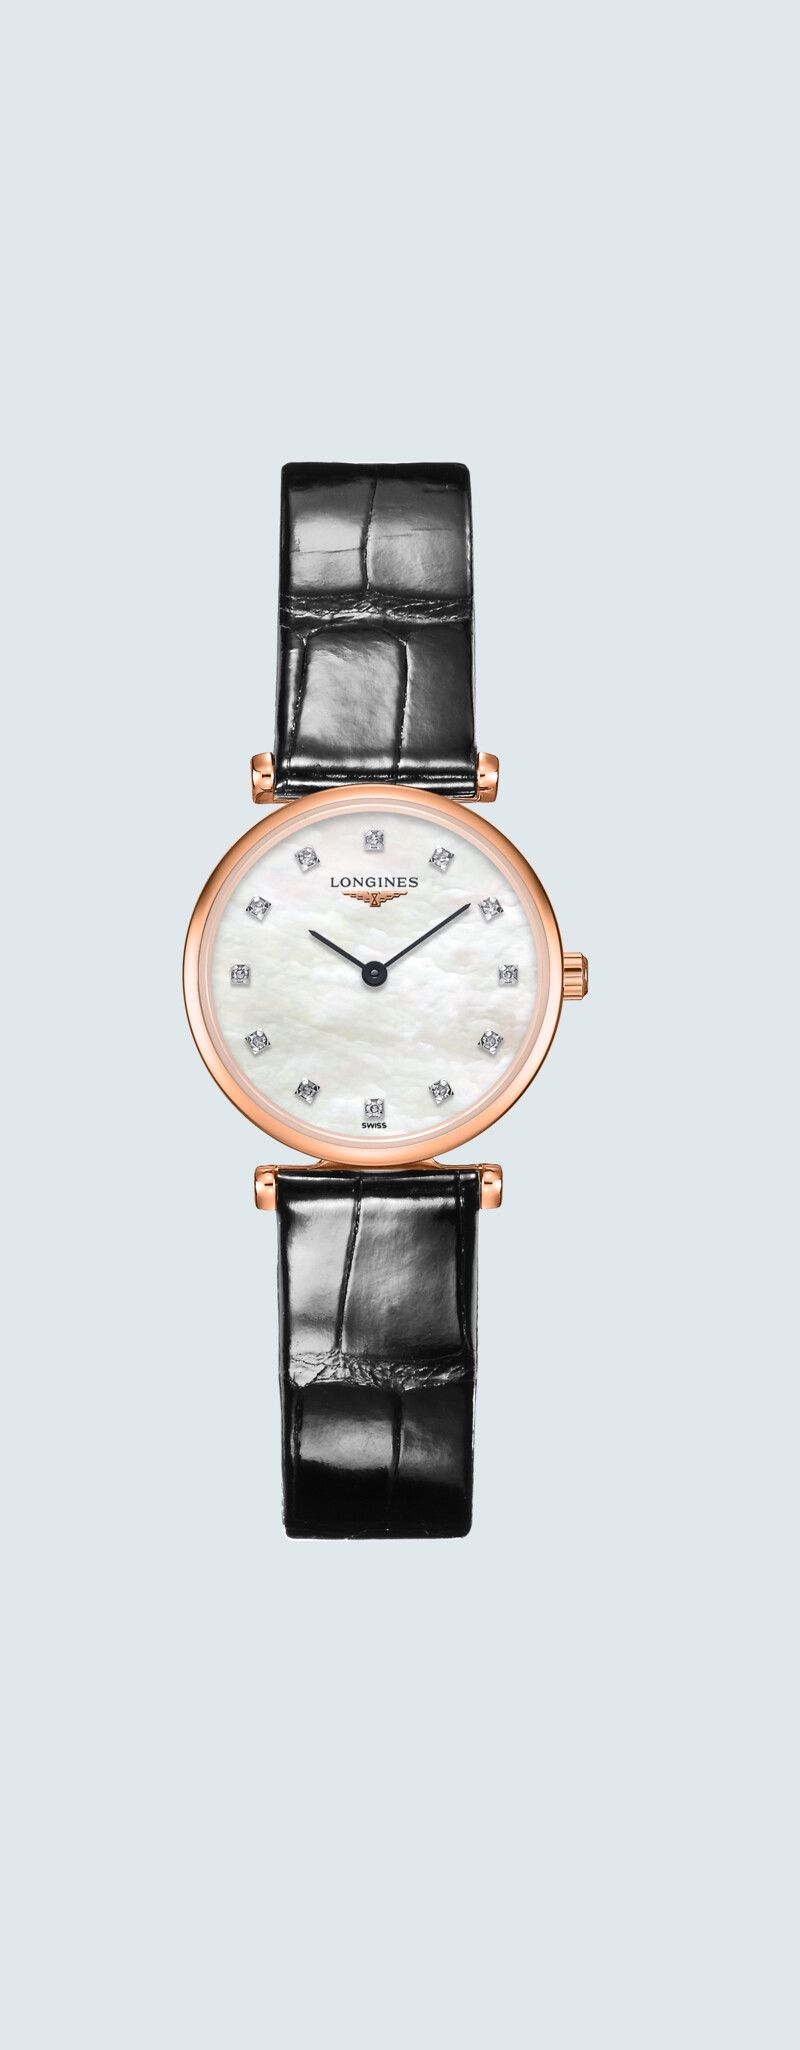 24.00 mm PVD rose case with Nacre blanche dial and Bracelet Alligator Noir strap - case zoom view